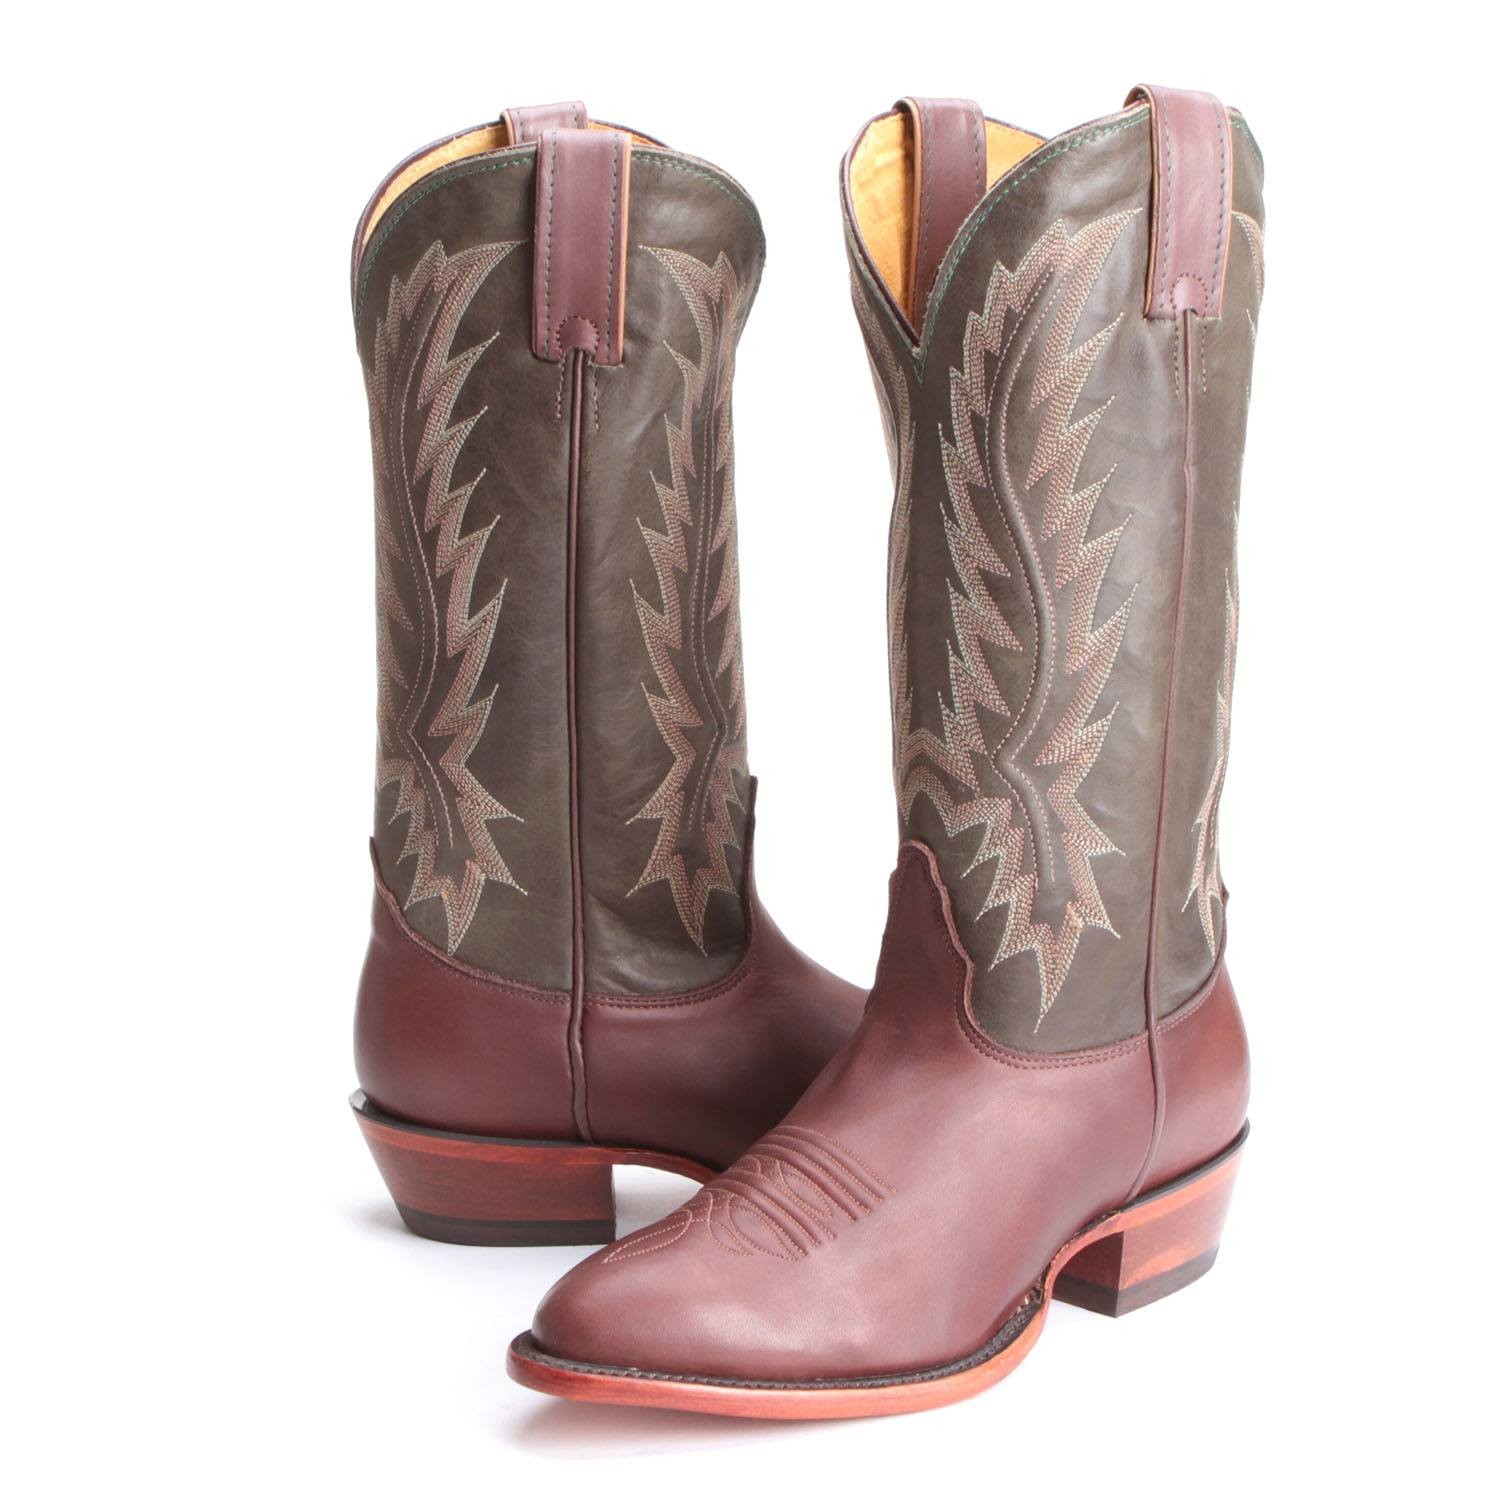 nocona boots pfi bootdaddy collection with nocona mens liga round toe cowboy boots  chocolate CXOLUTK